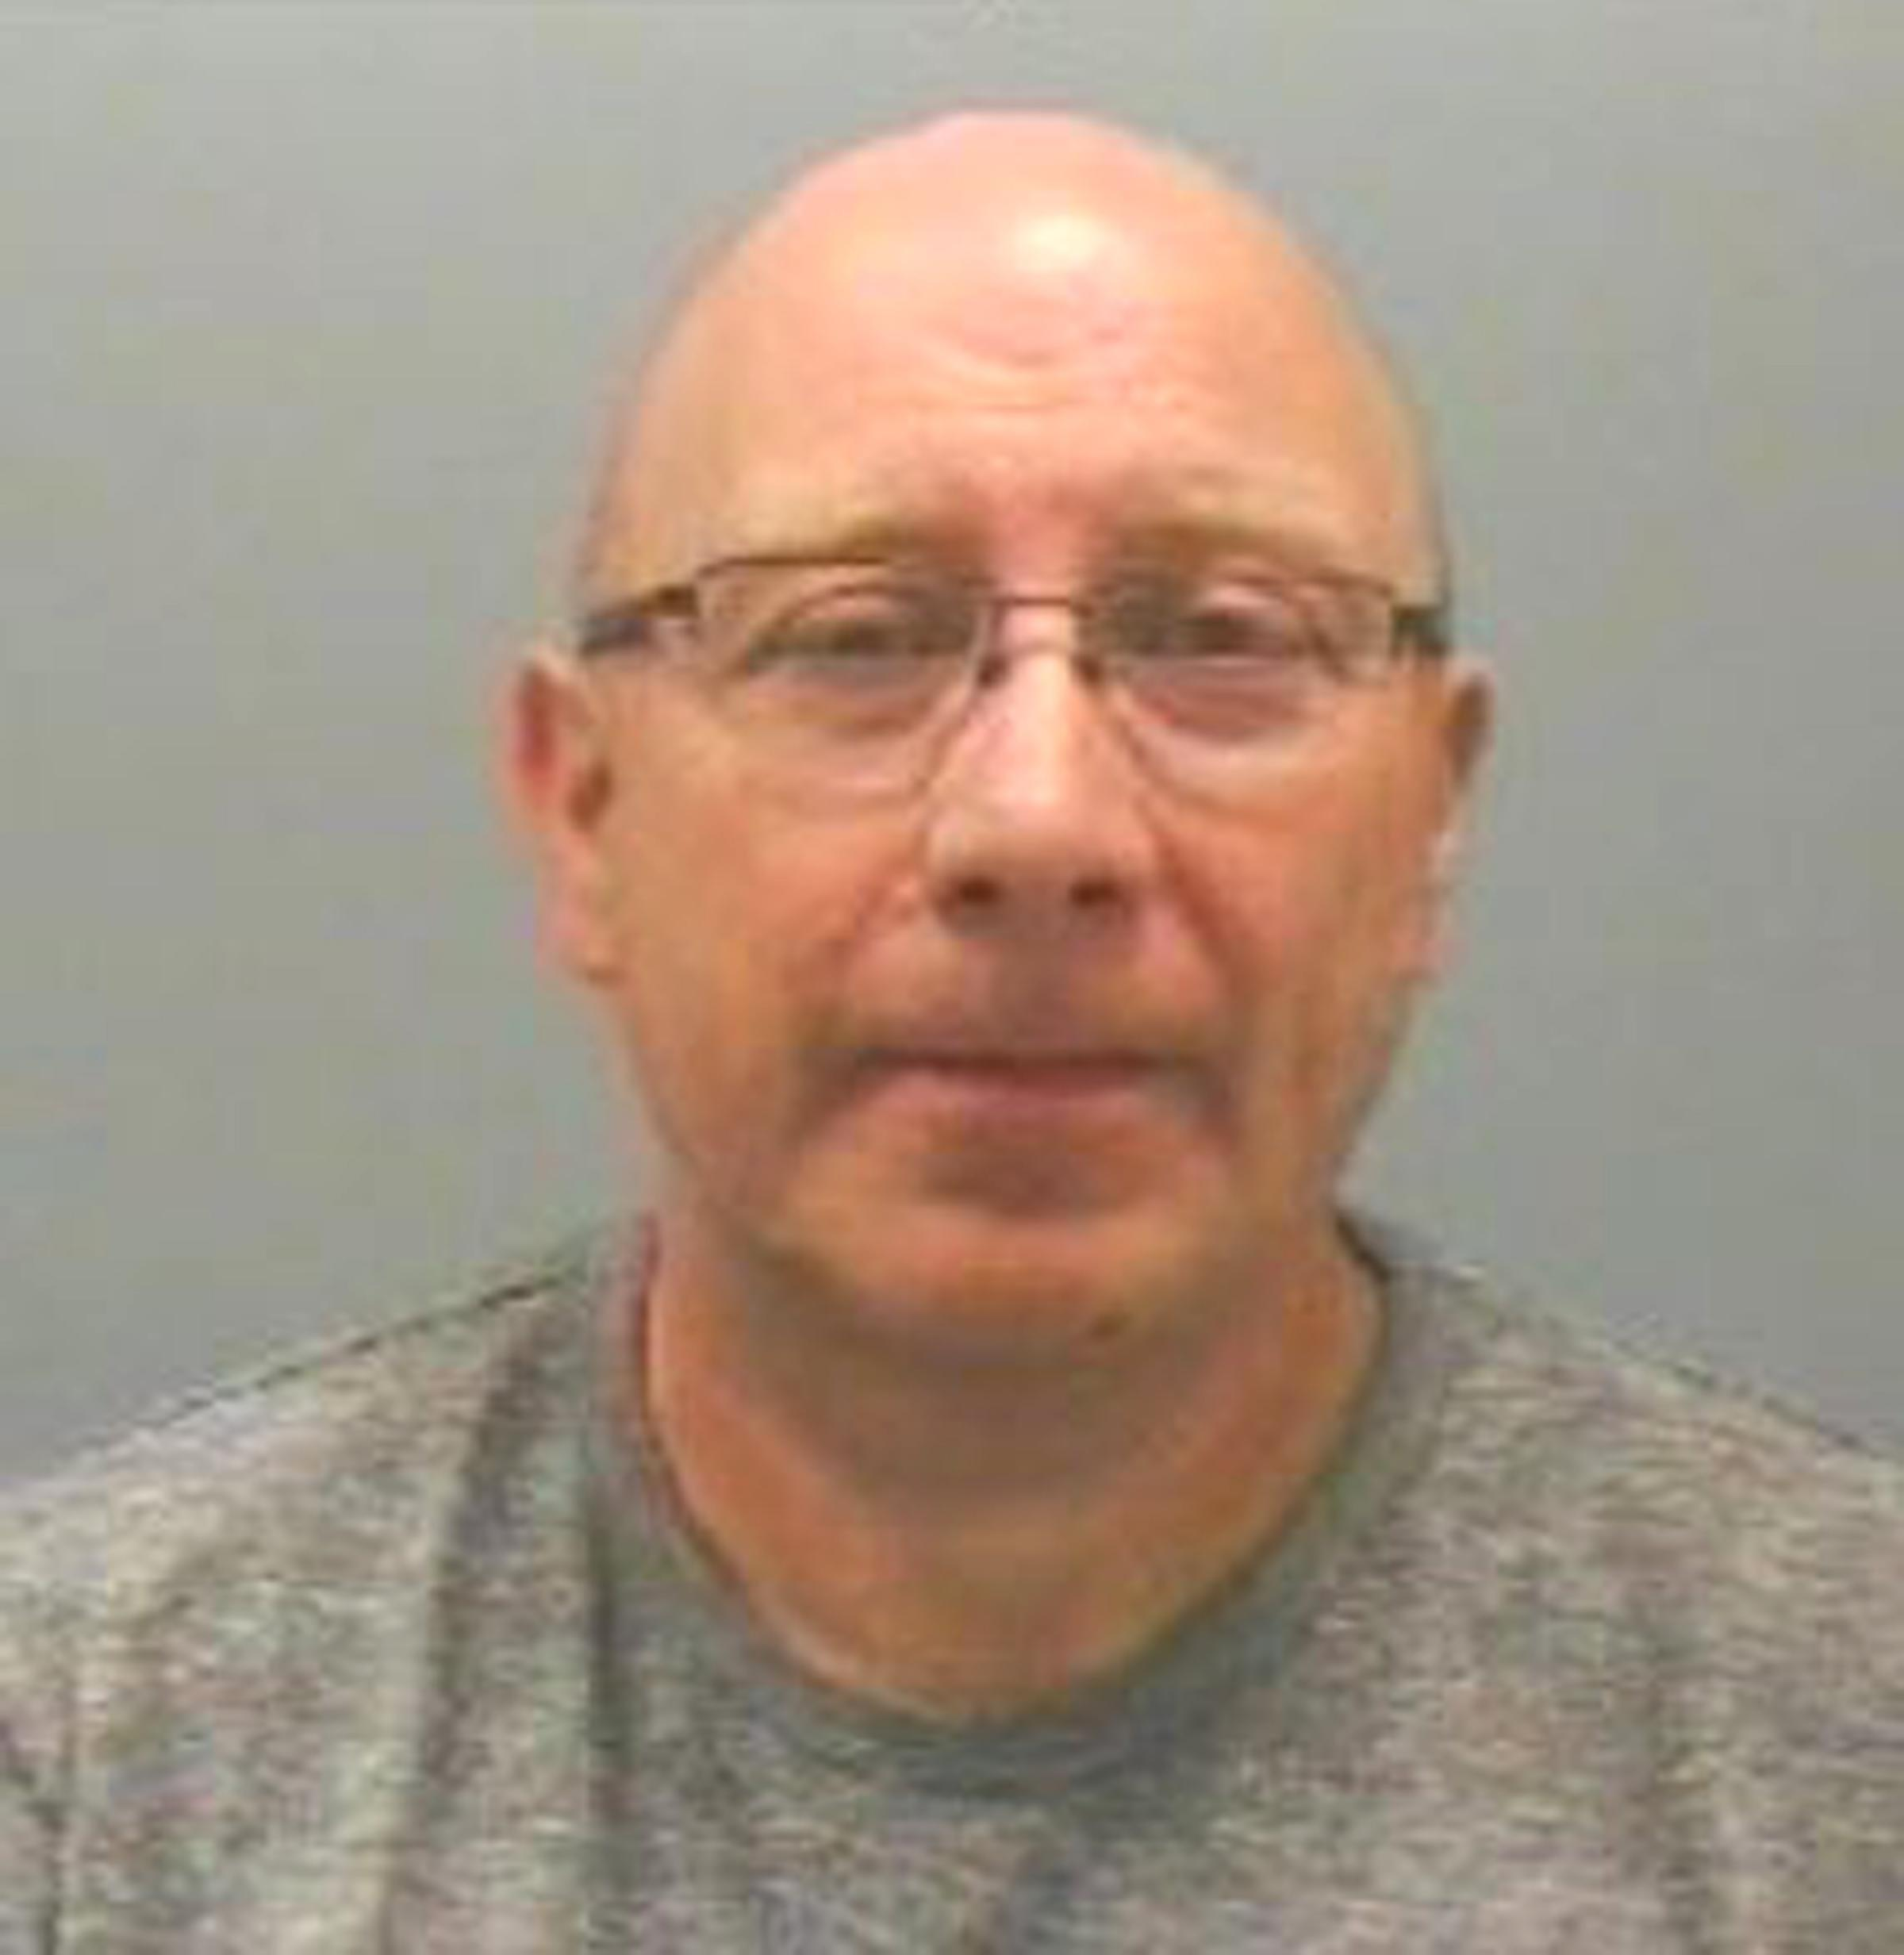 RAPIST JAILED: Paul Dial jailed for two counts of rape